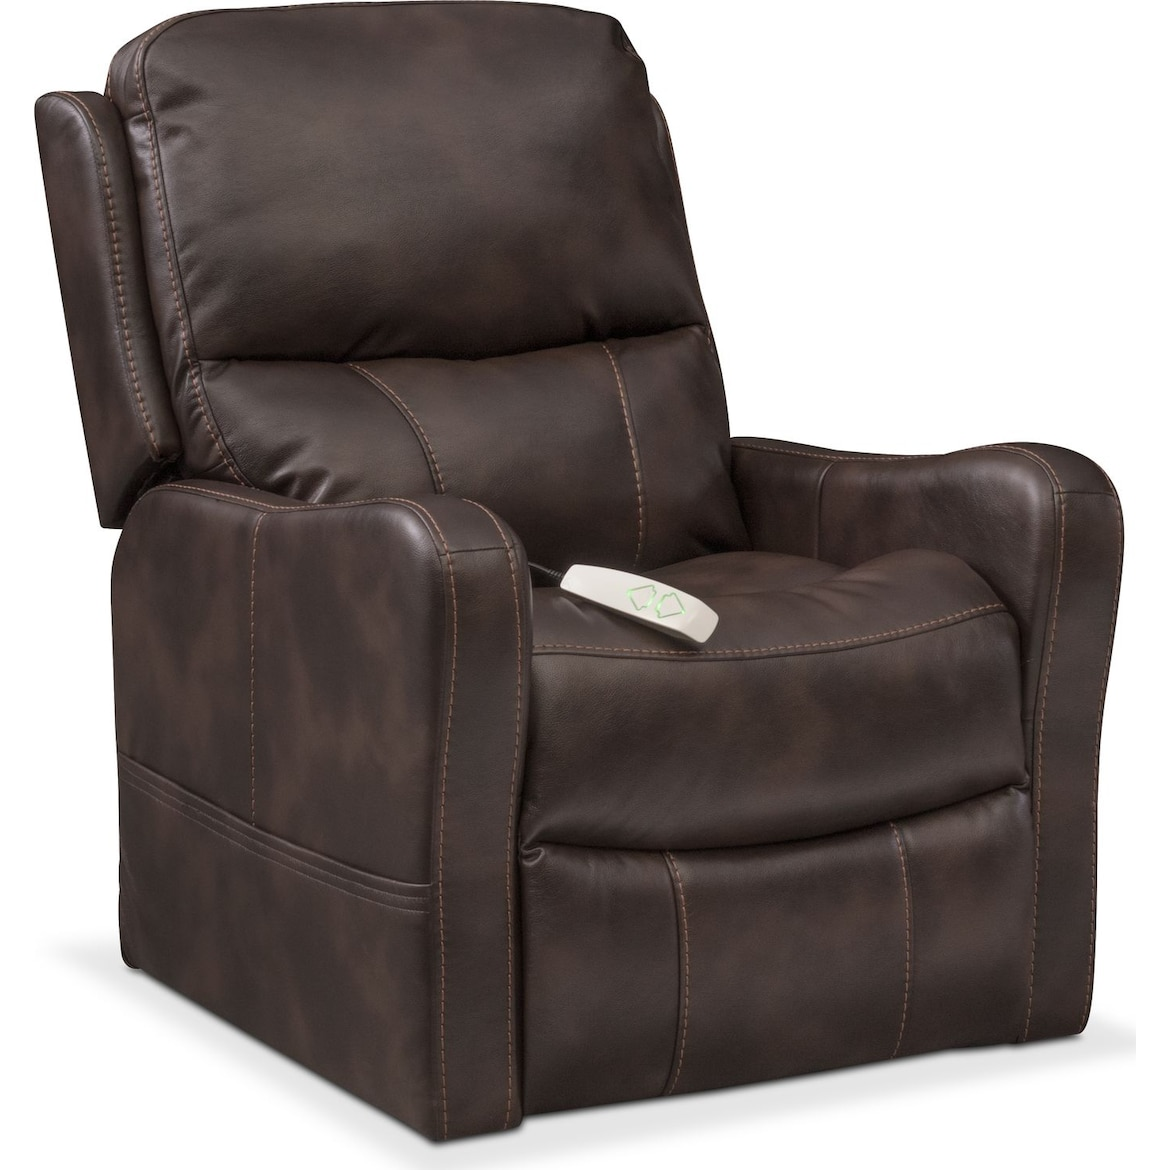 Cabo Power Lift Recliner American Signature Furniture